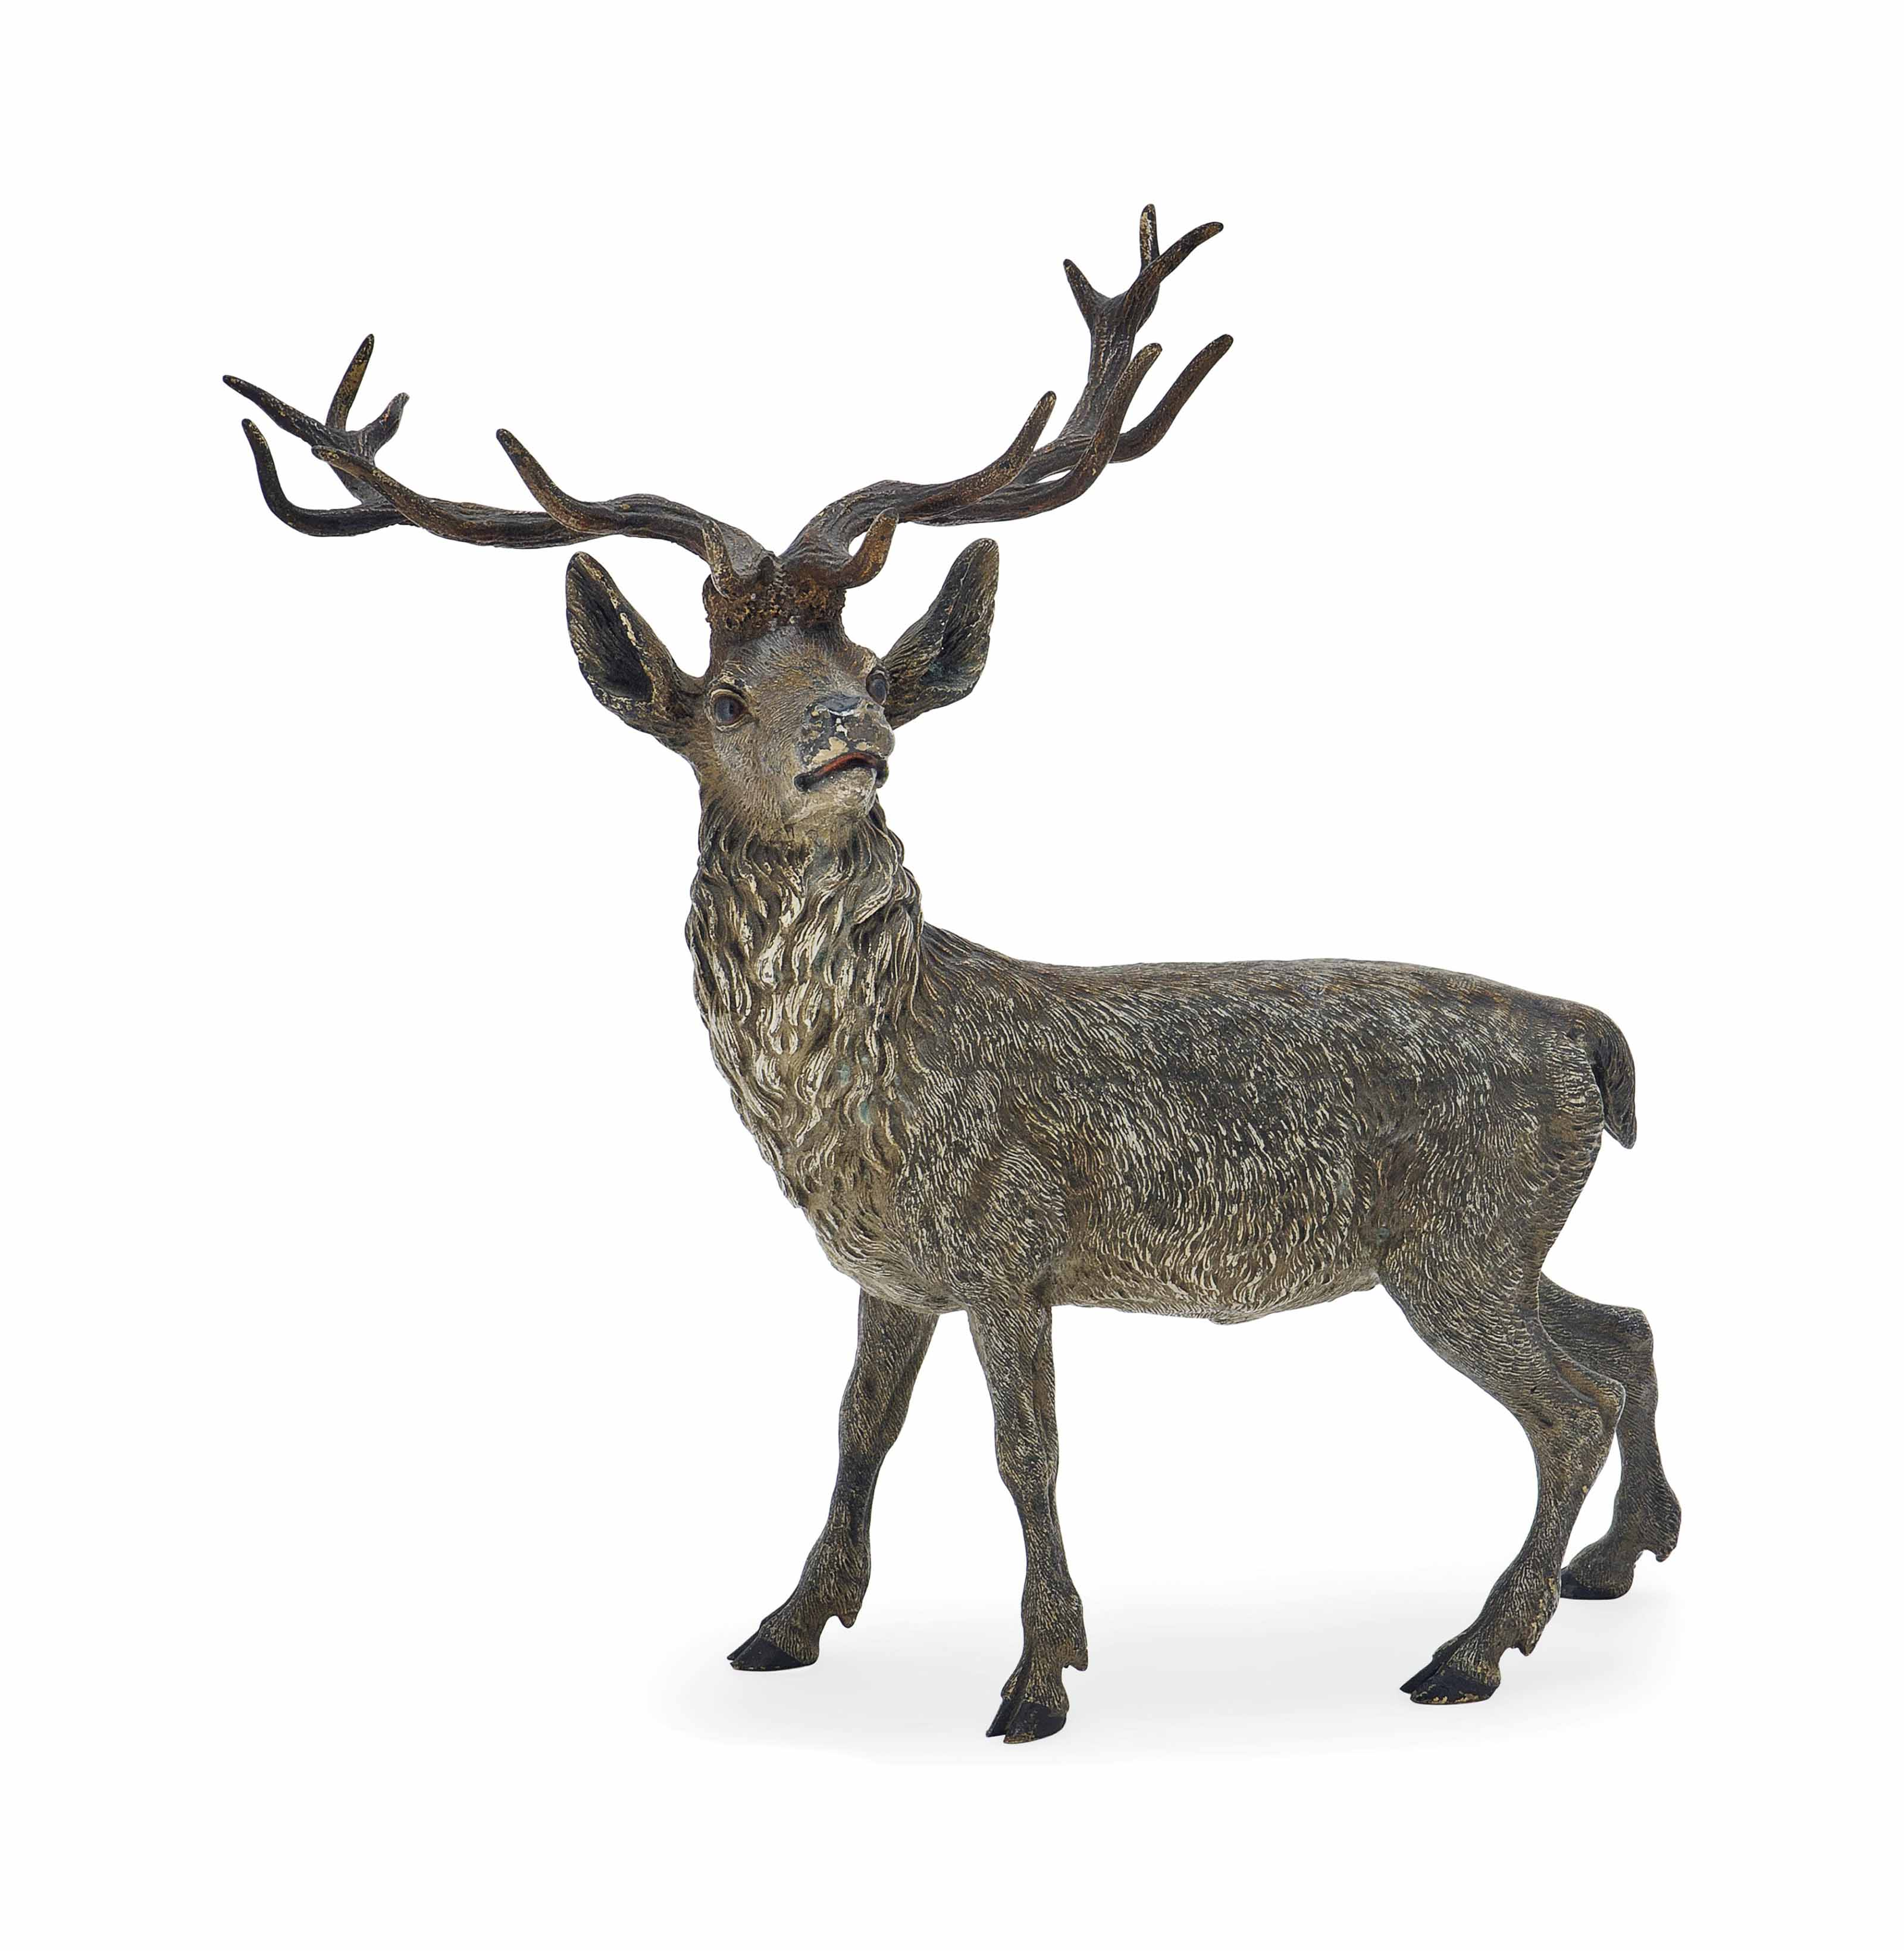 AN AUSTRIAN COLD-PAINTED BRONZE MODEL OF A STAG